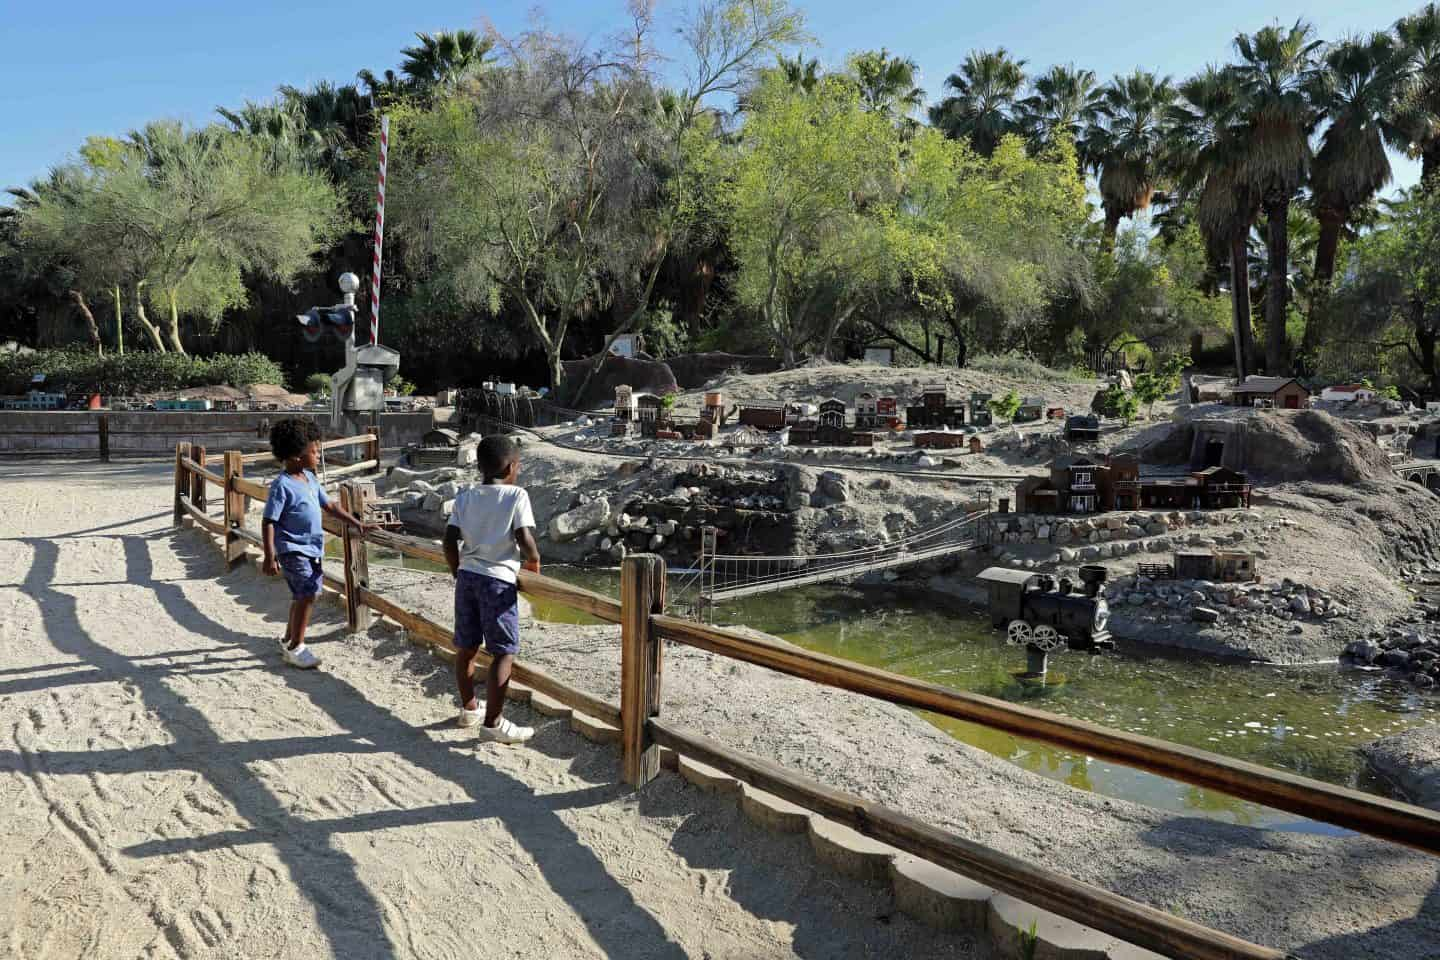 two children looking at the exhibits at the The Living Desert Zoo and Gardens